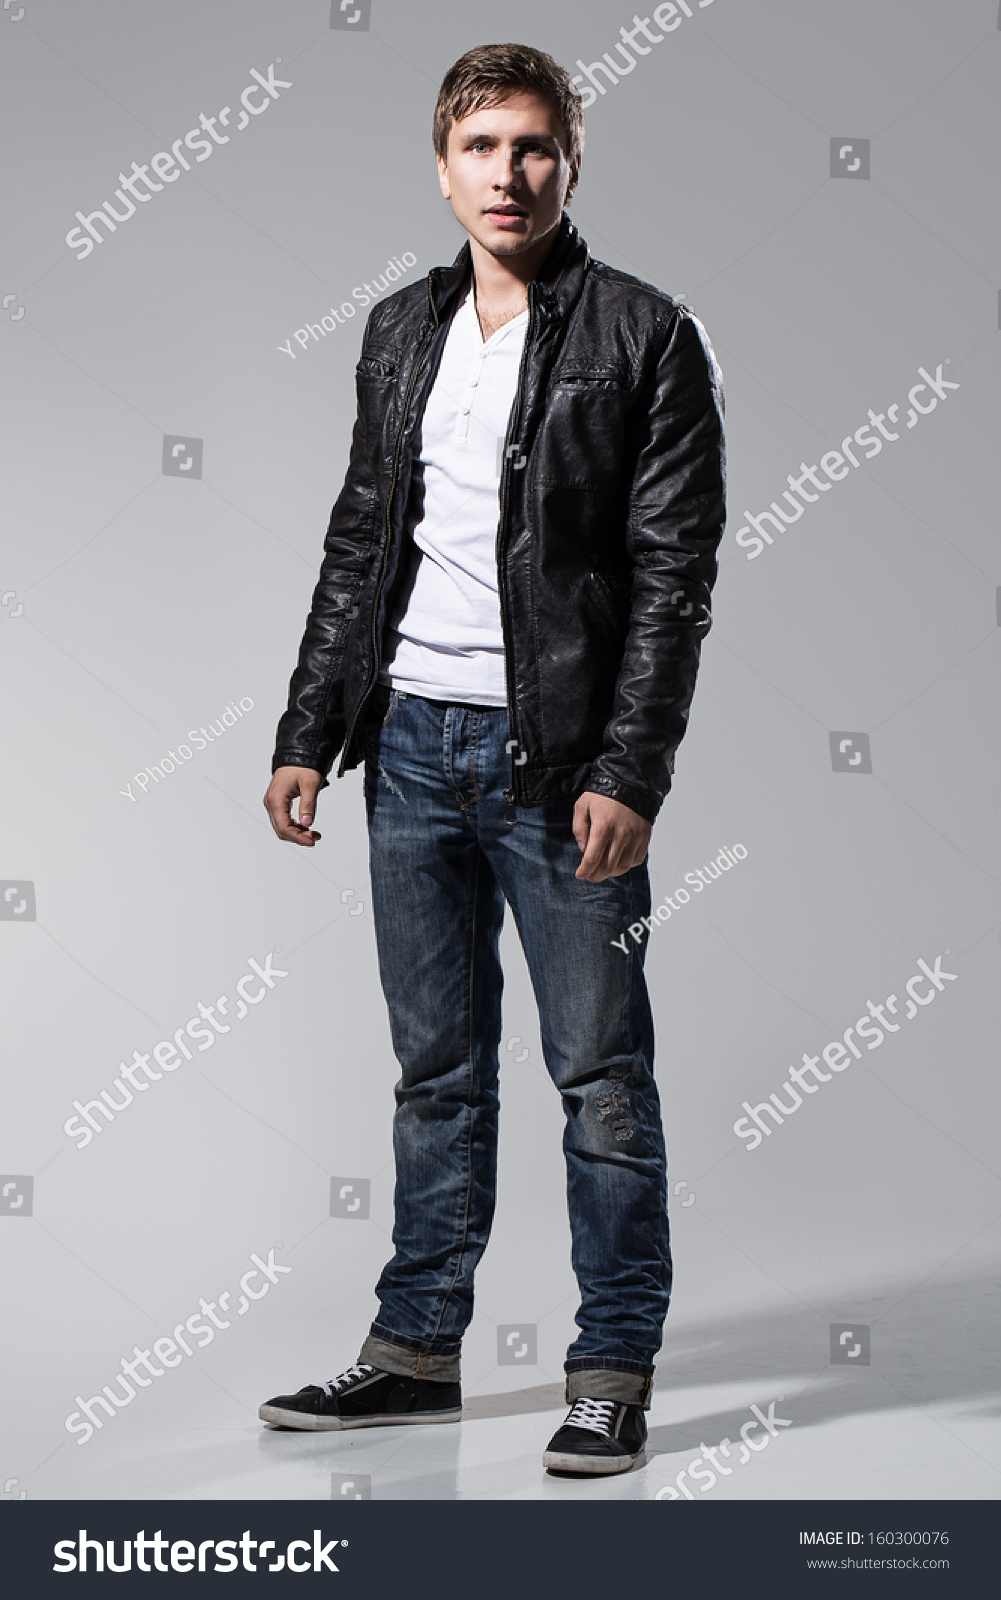 T Shirt And Leather Jacket - Coat Nj